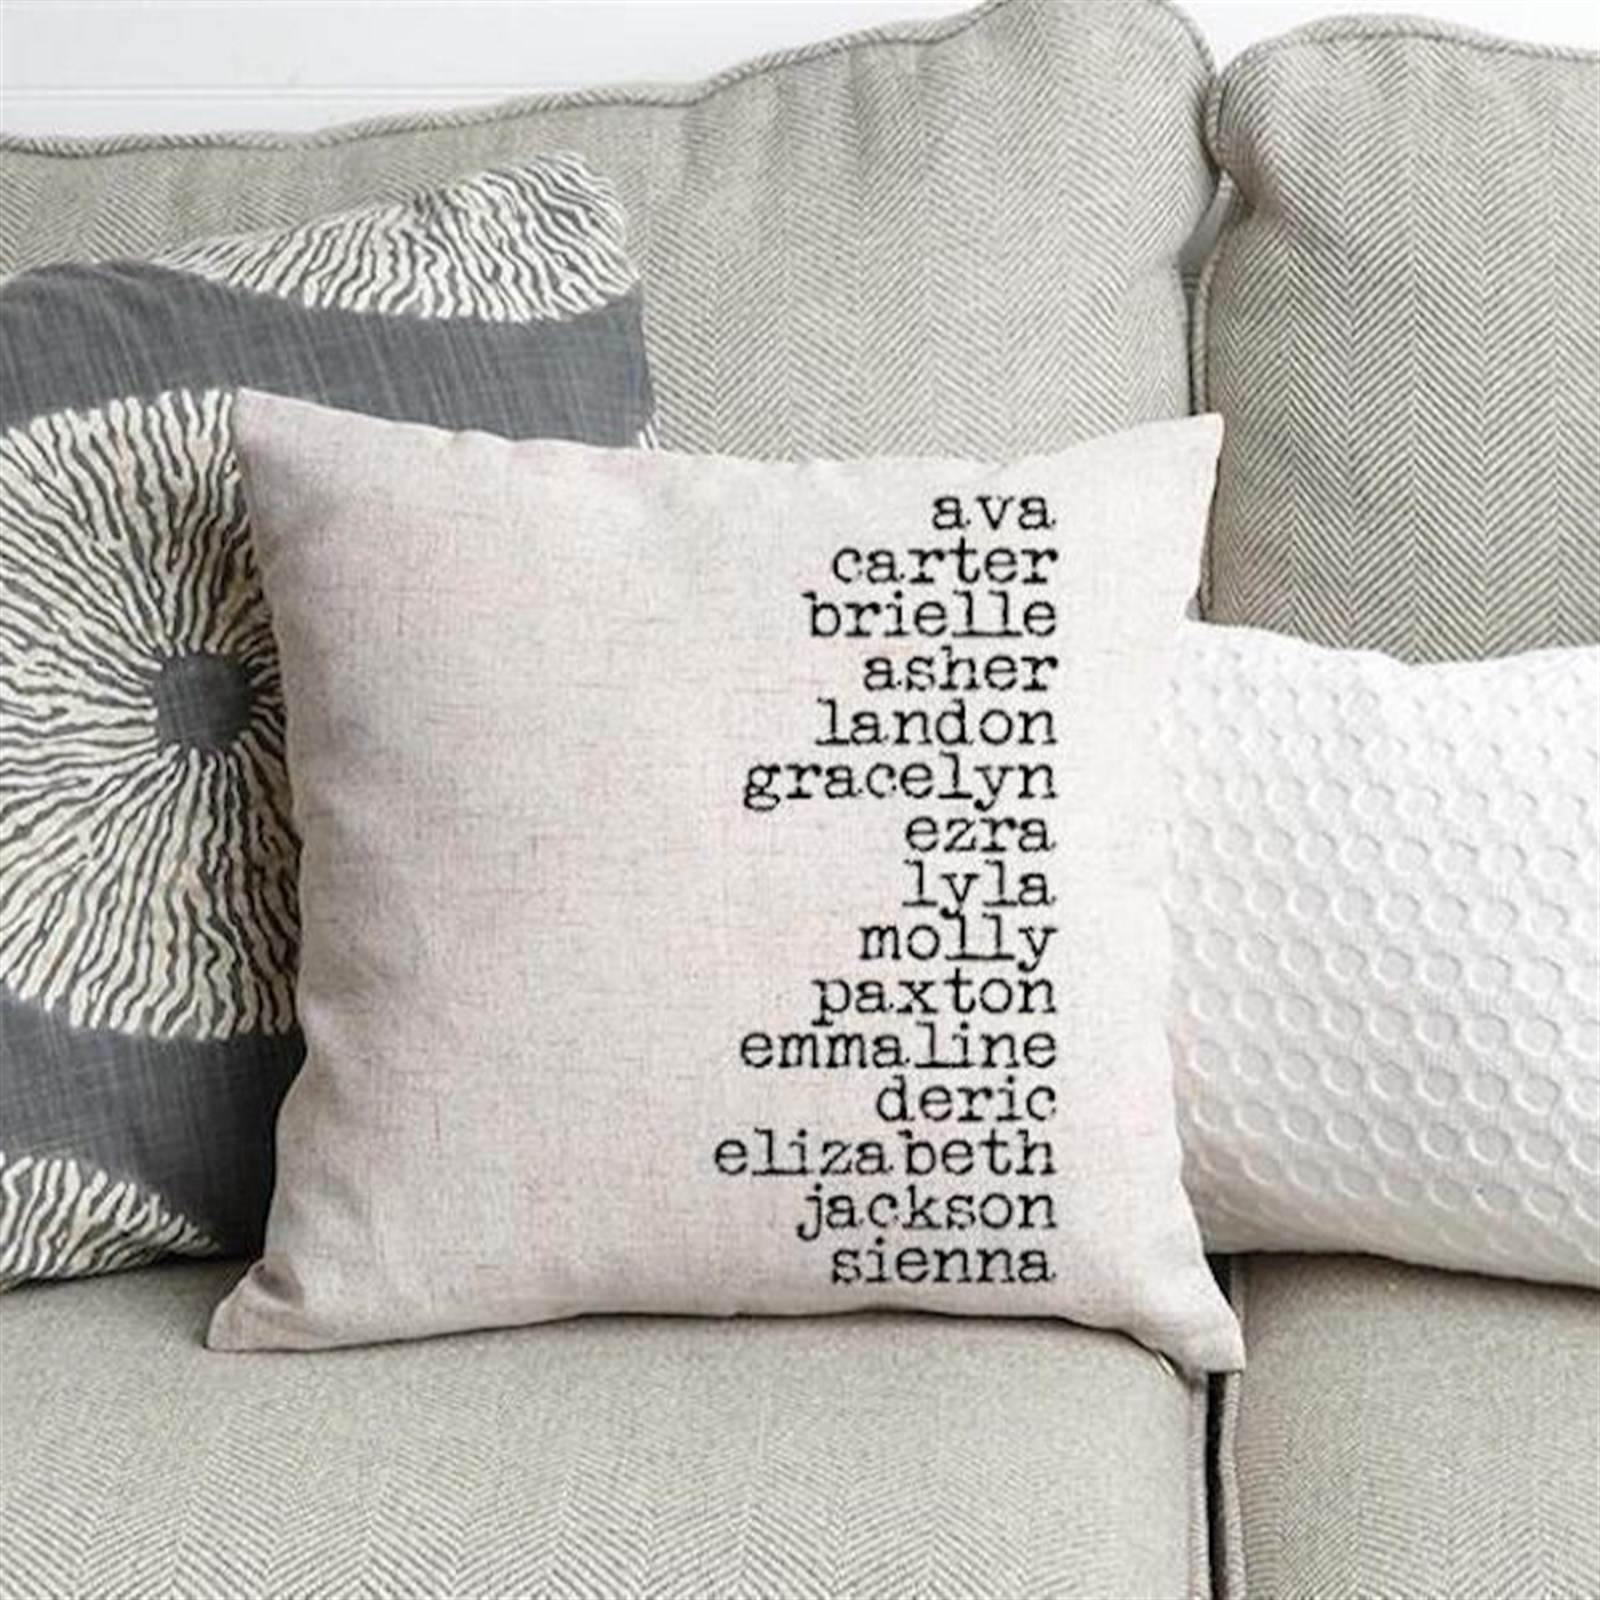 Personalized Throw Pillow Cover w/ Free Shipping Only $11.99